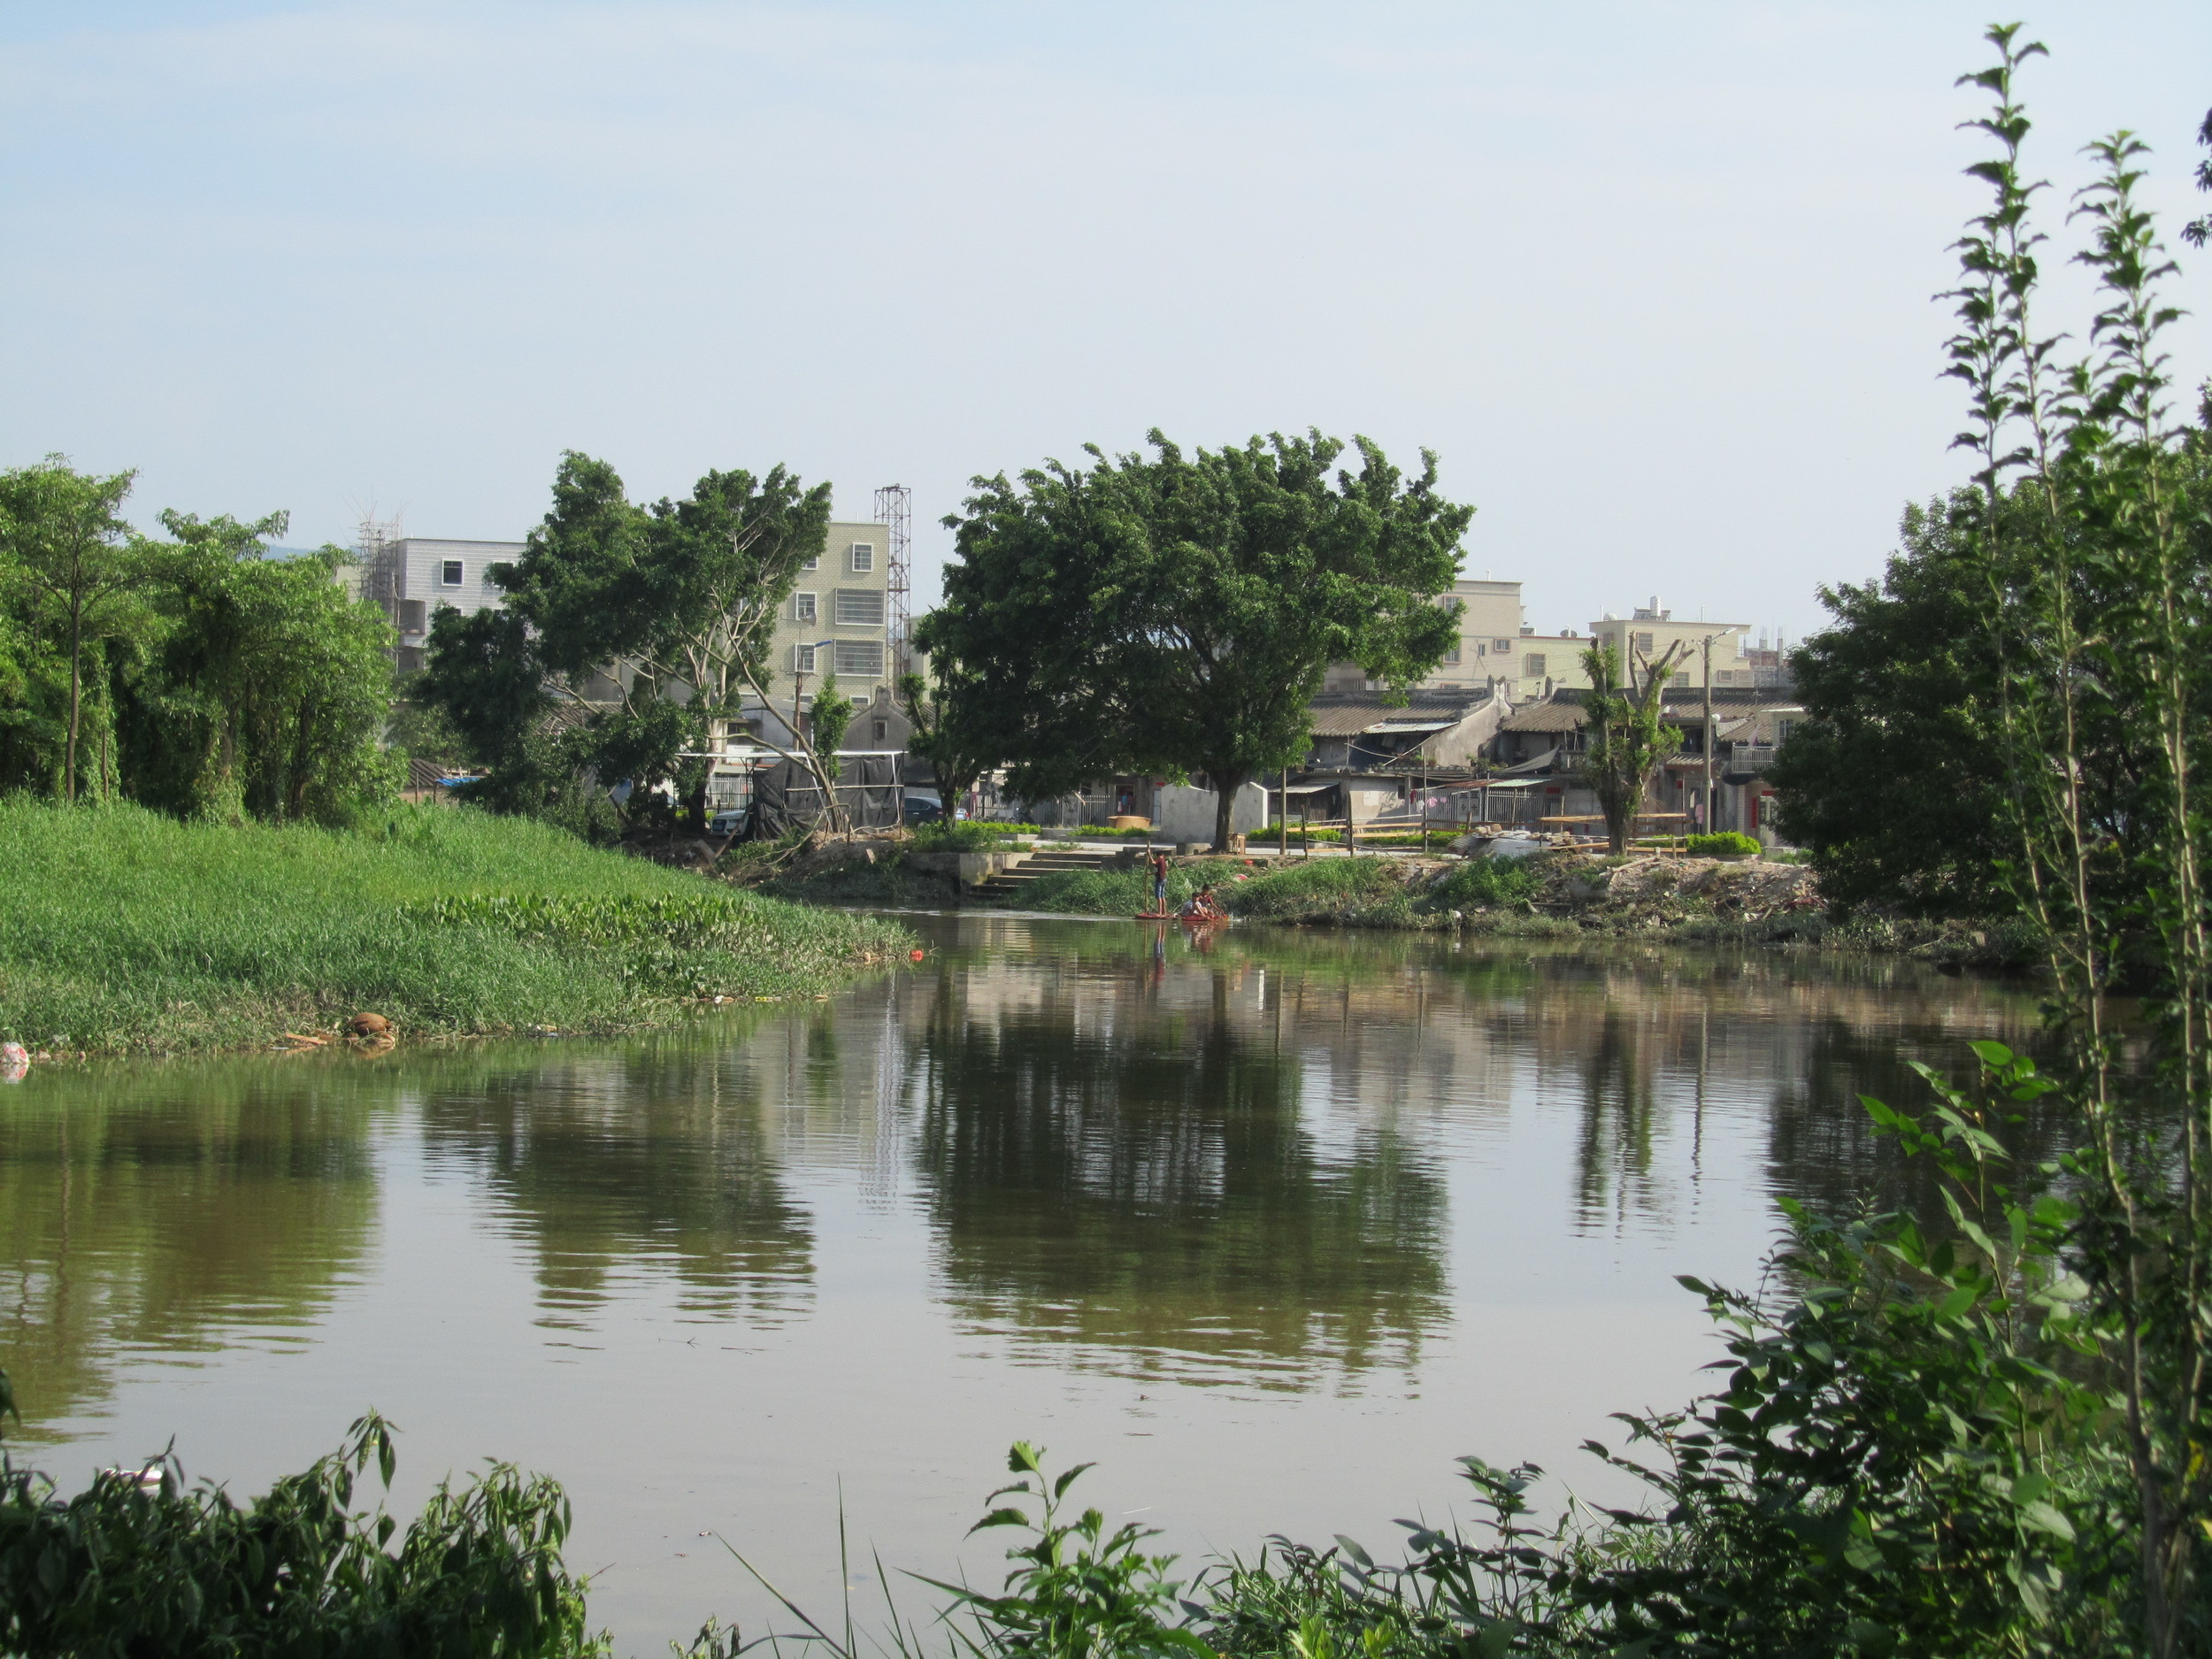 The river area that flowed through the village